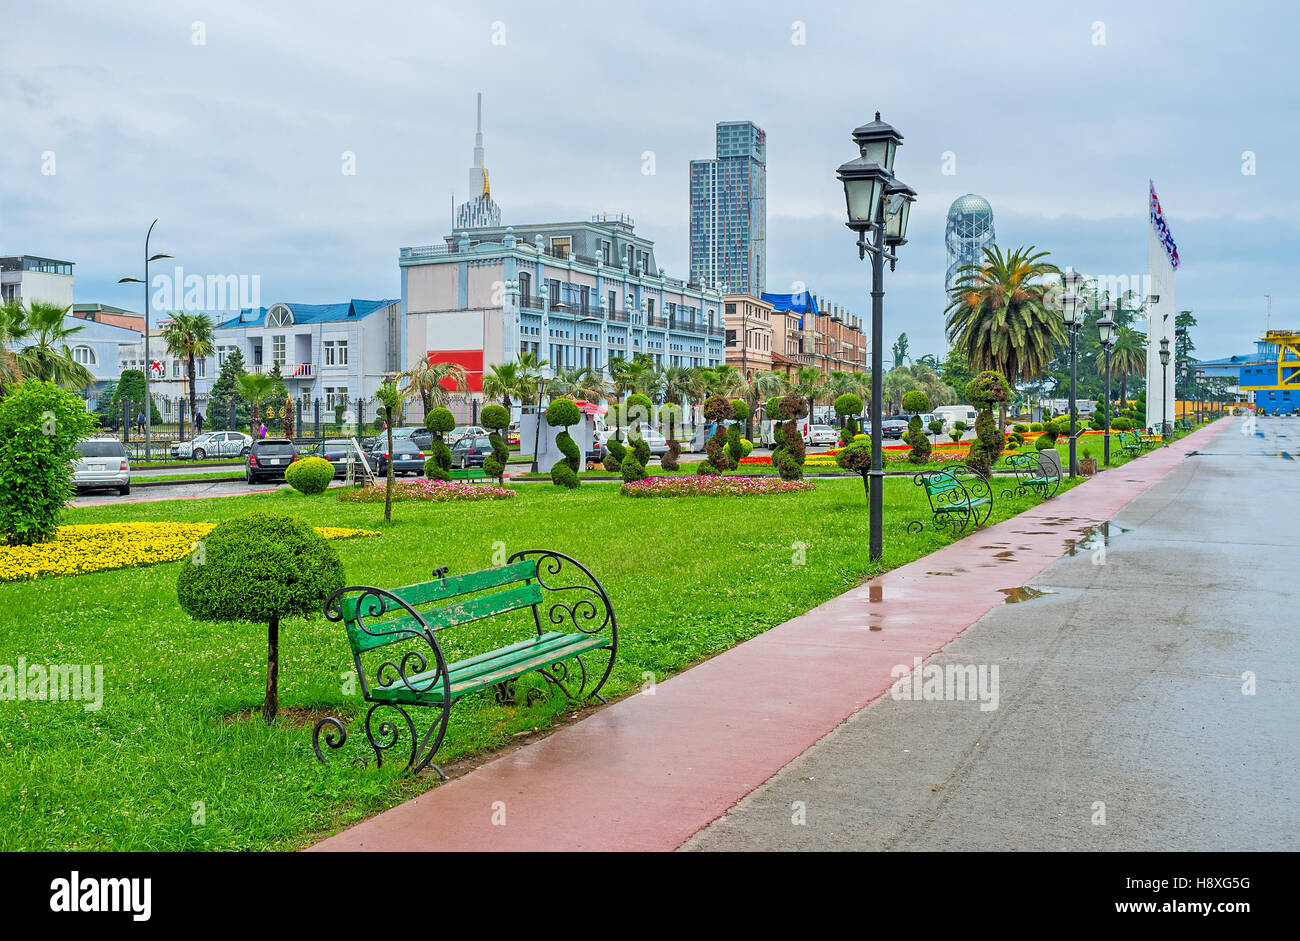 The nice landscaped french garden decorates the Sea Port promenade of Batumi, Georgia. - Stock Image